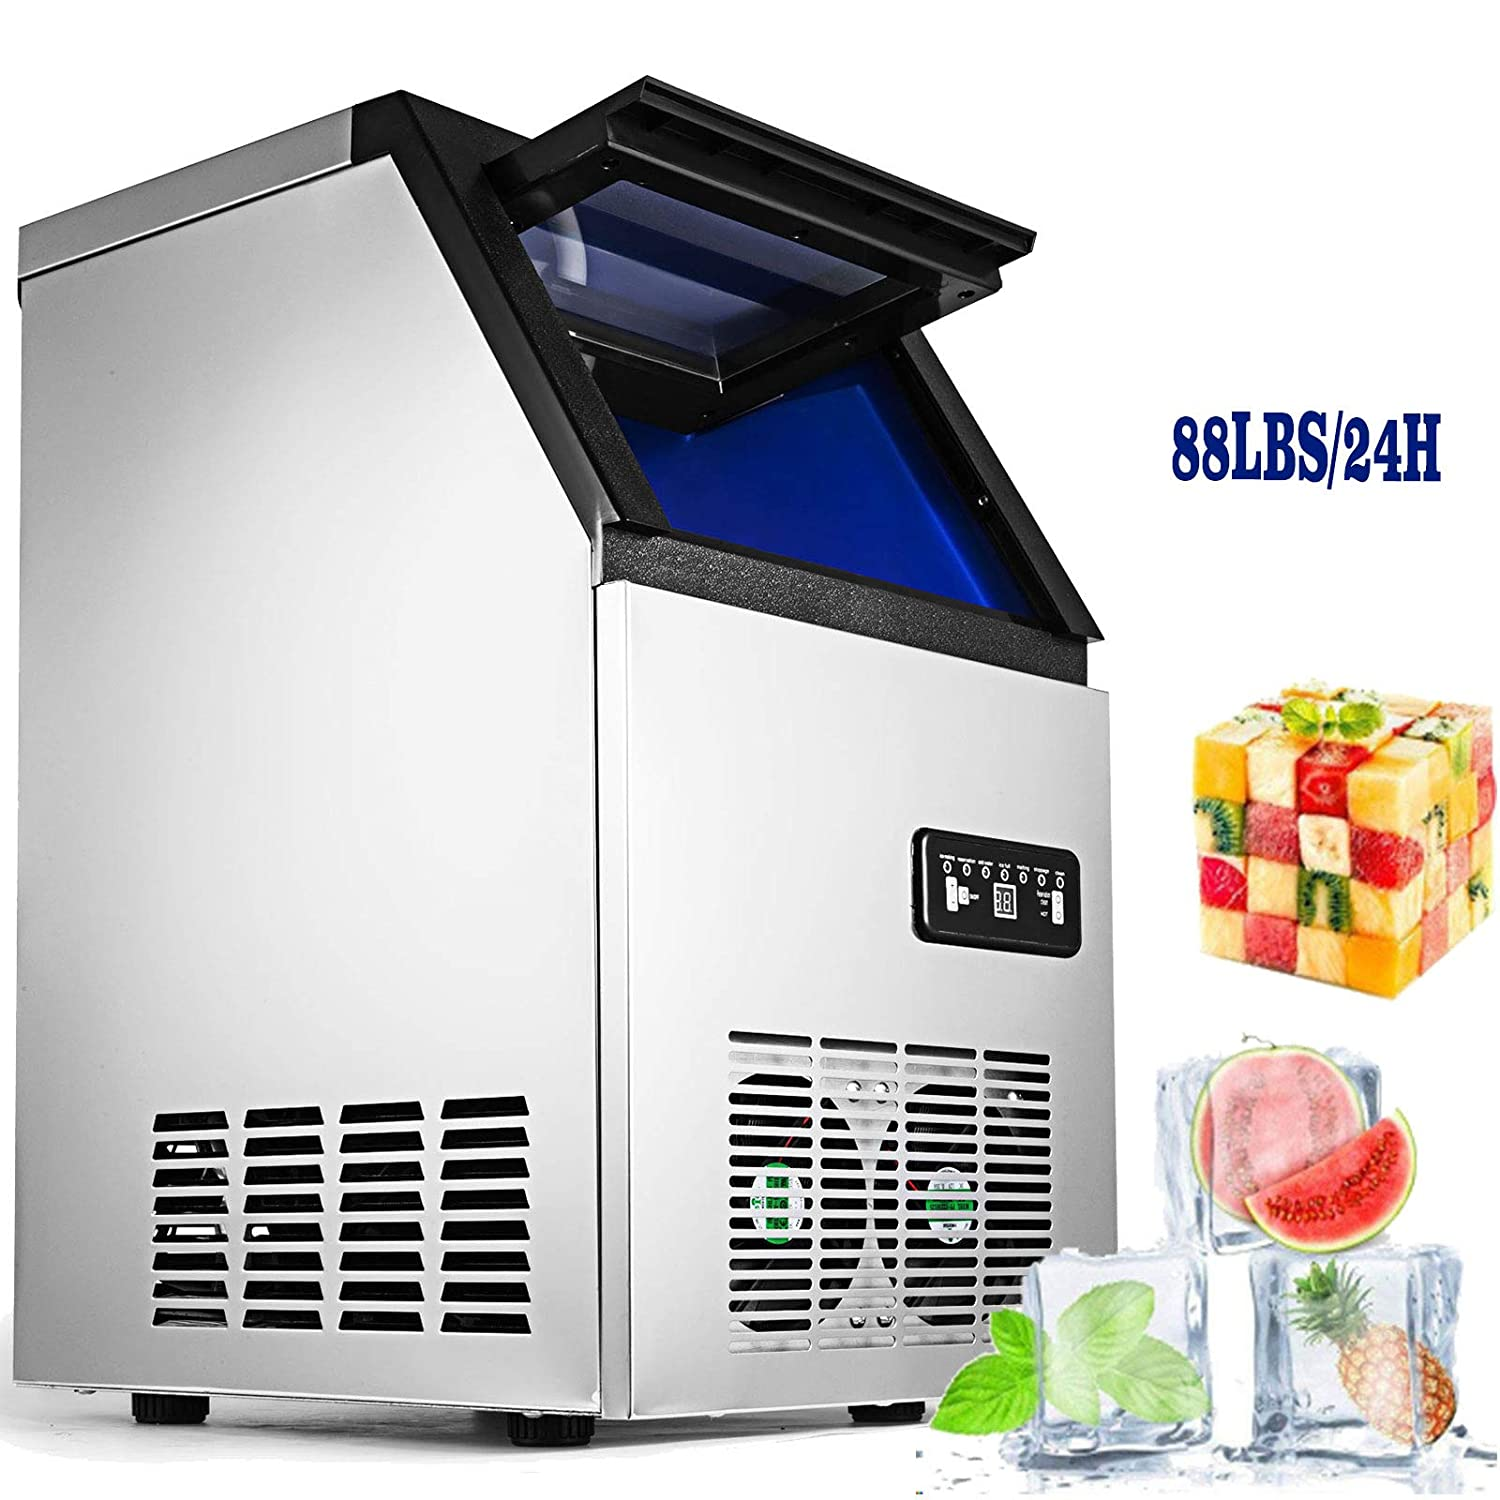 VEVOR 110V Commercial Ice Maker Stainless Steel Portable Automatic Ice Cube Maker Machine Bulit-In Ice Making Machine for Home Supermarkets Cafes (Digital Ice Machine, 88lbs/24h)